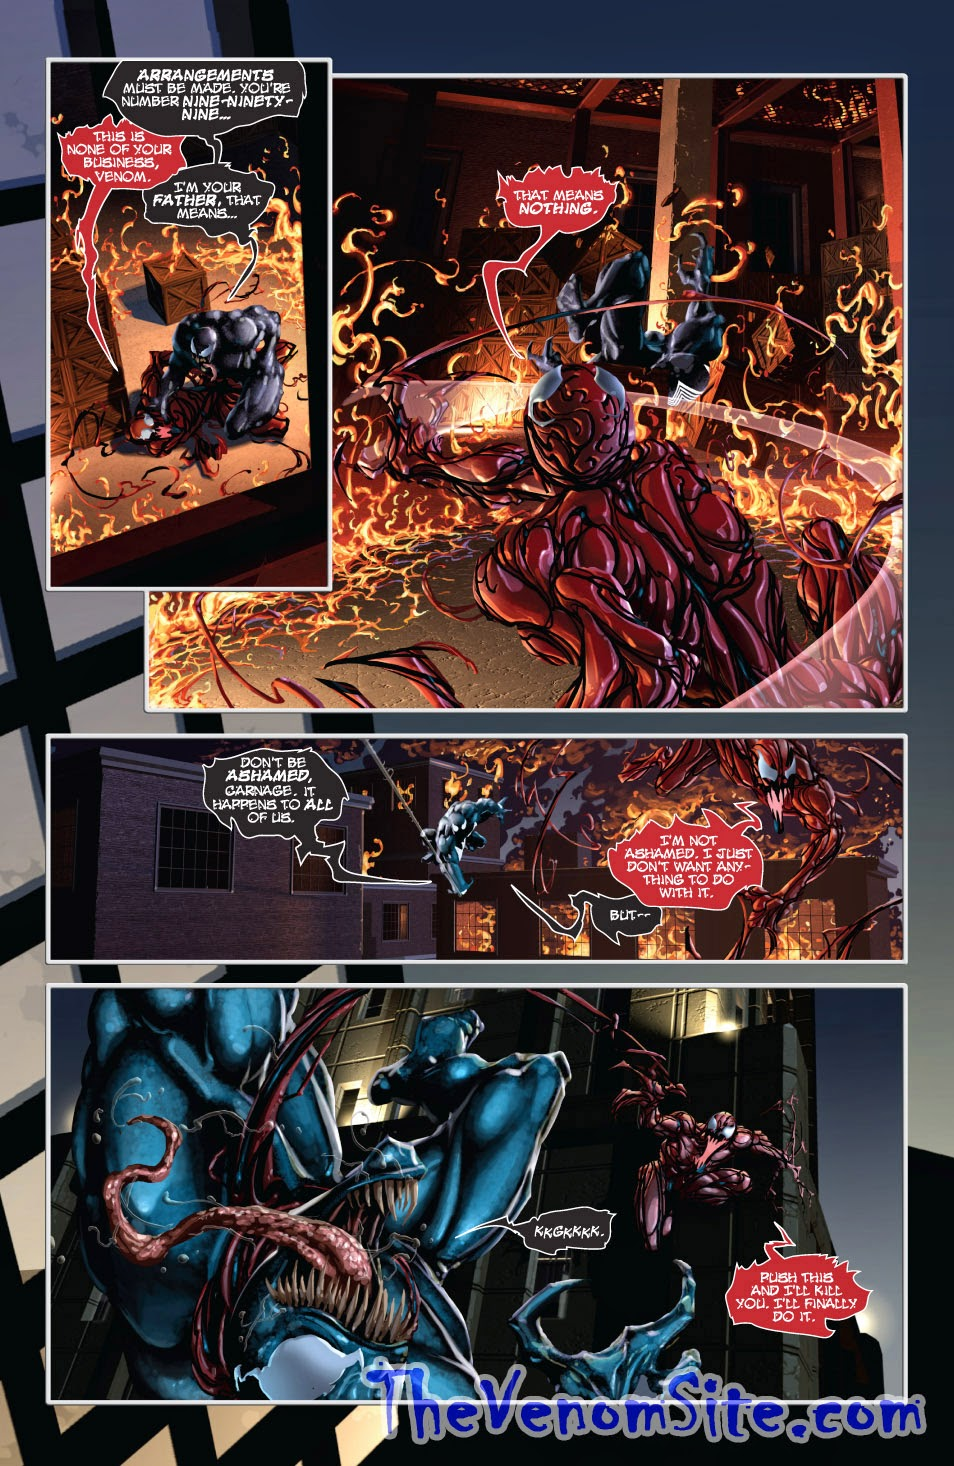 Read Venom vs Carnage on the Marvel Comics App for Android and iOS